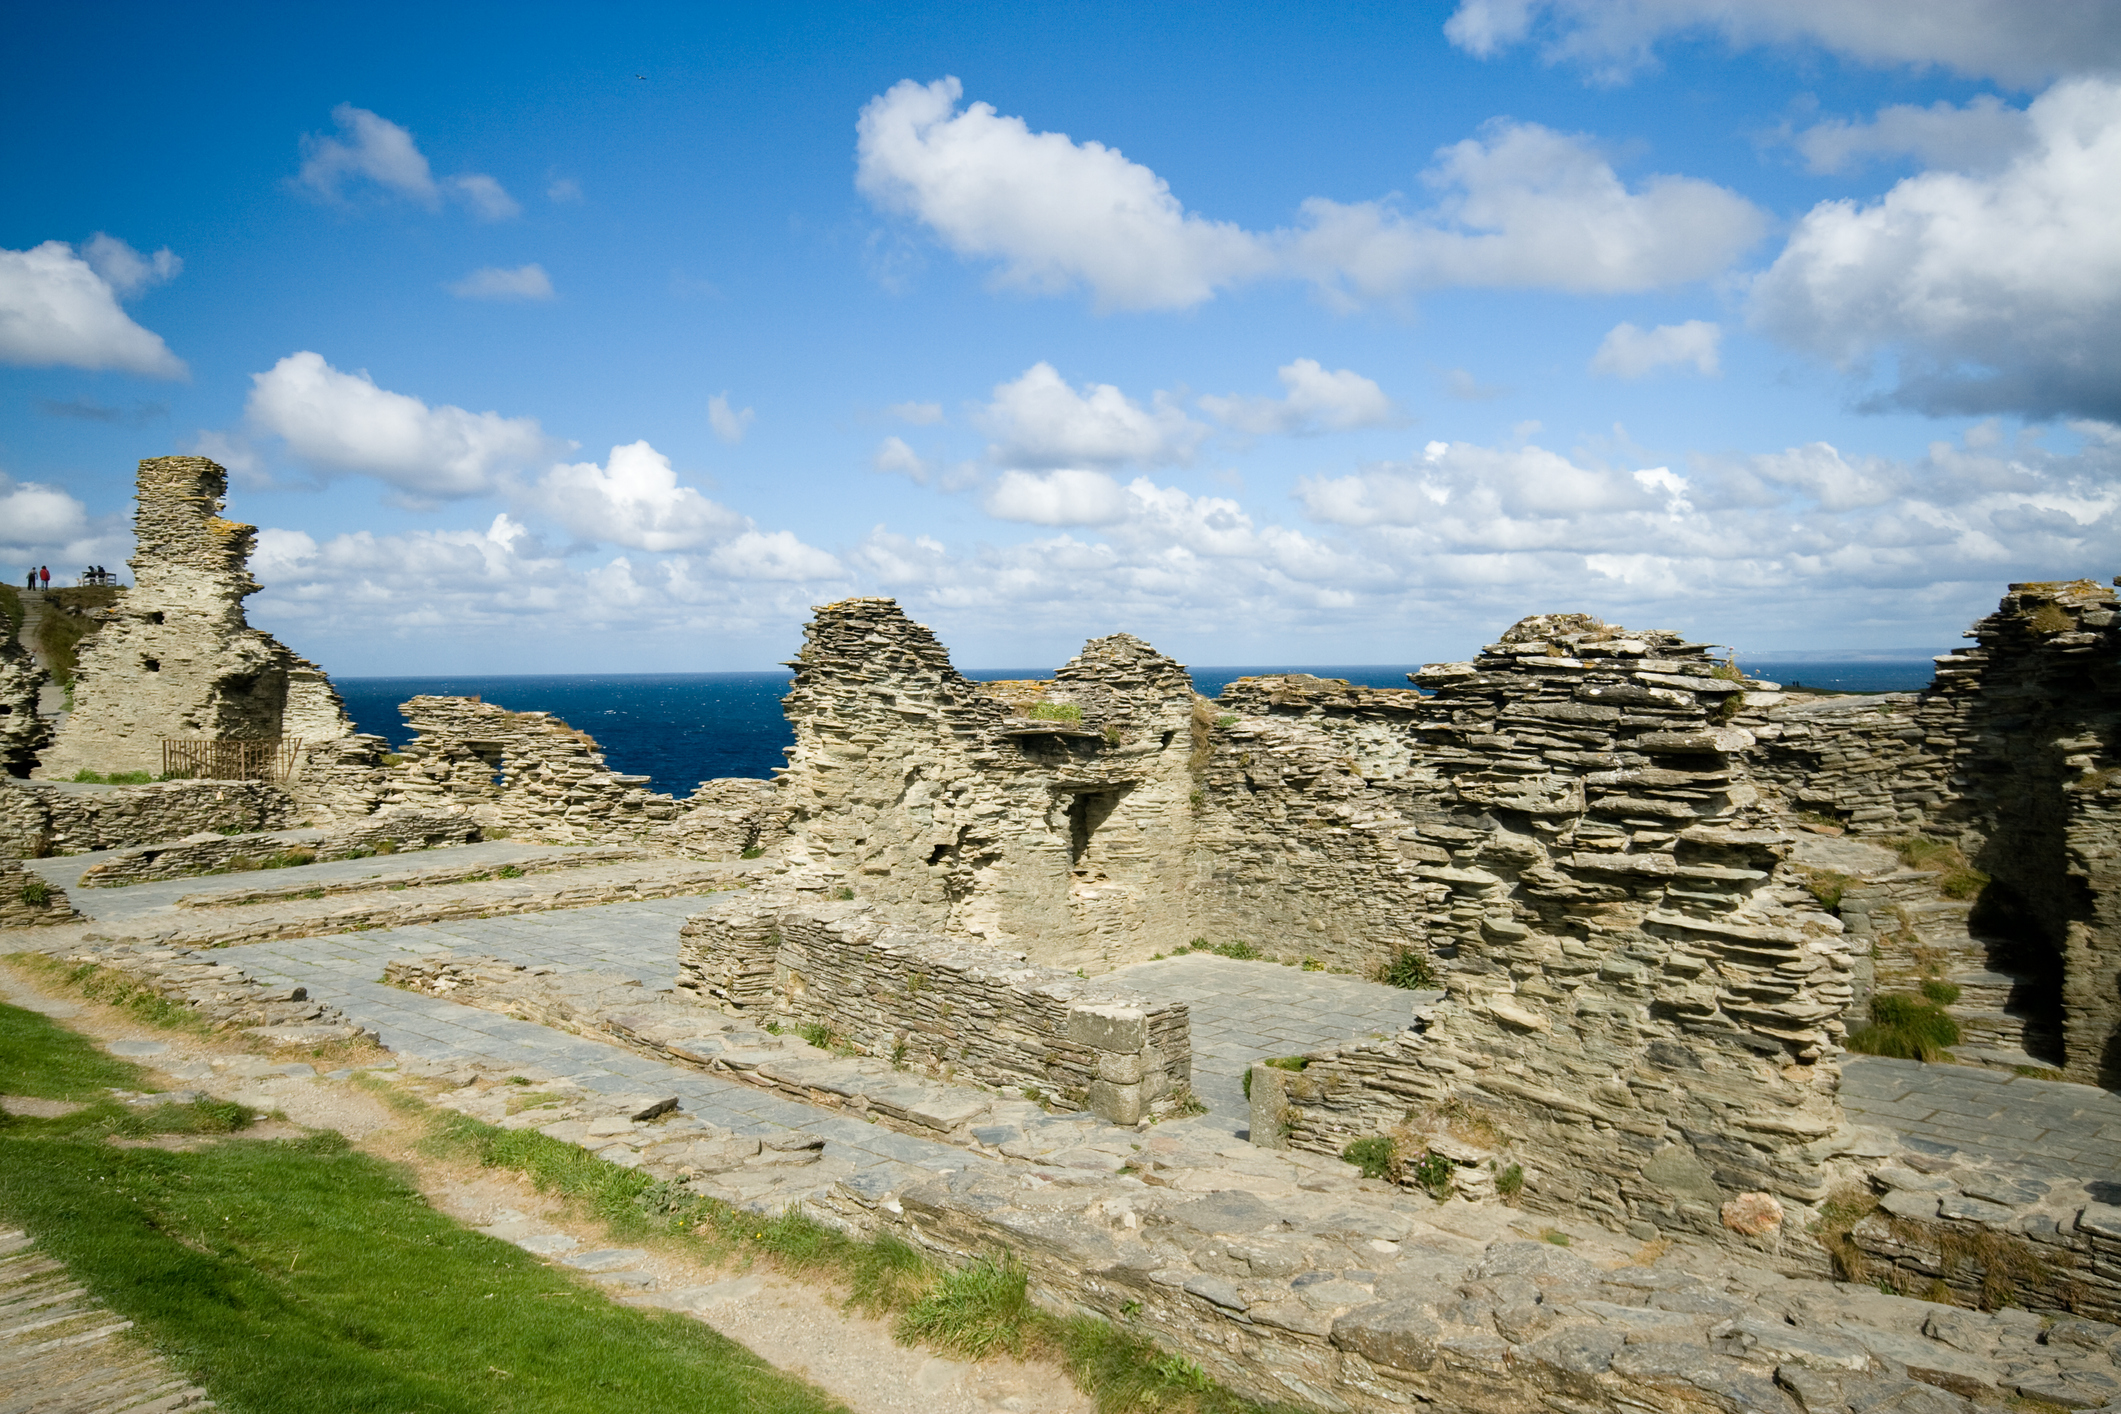 A landscape view of Tintagel Castle ruins, in north Cornwall, England, with the remains of walls and floors in stone